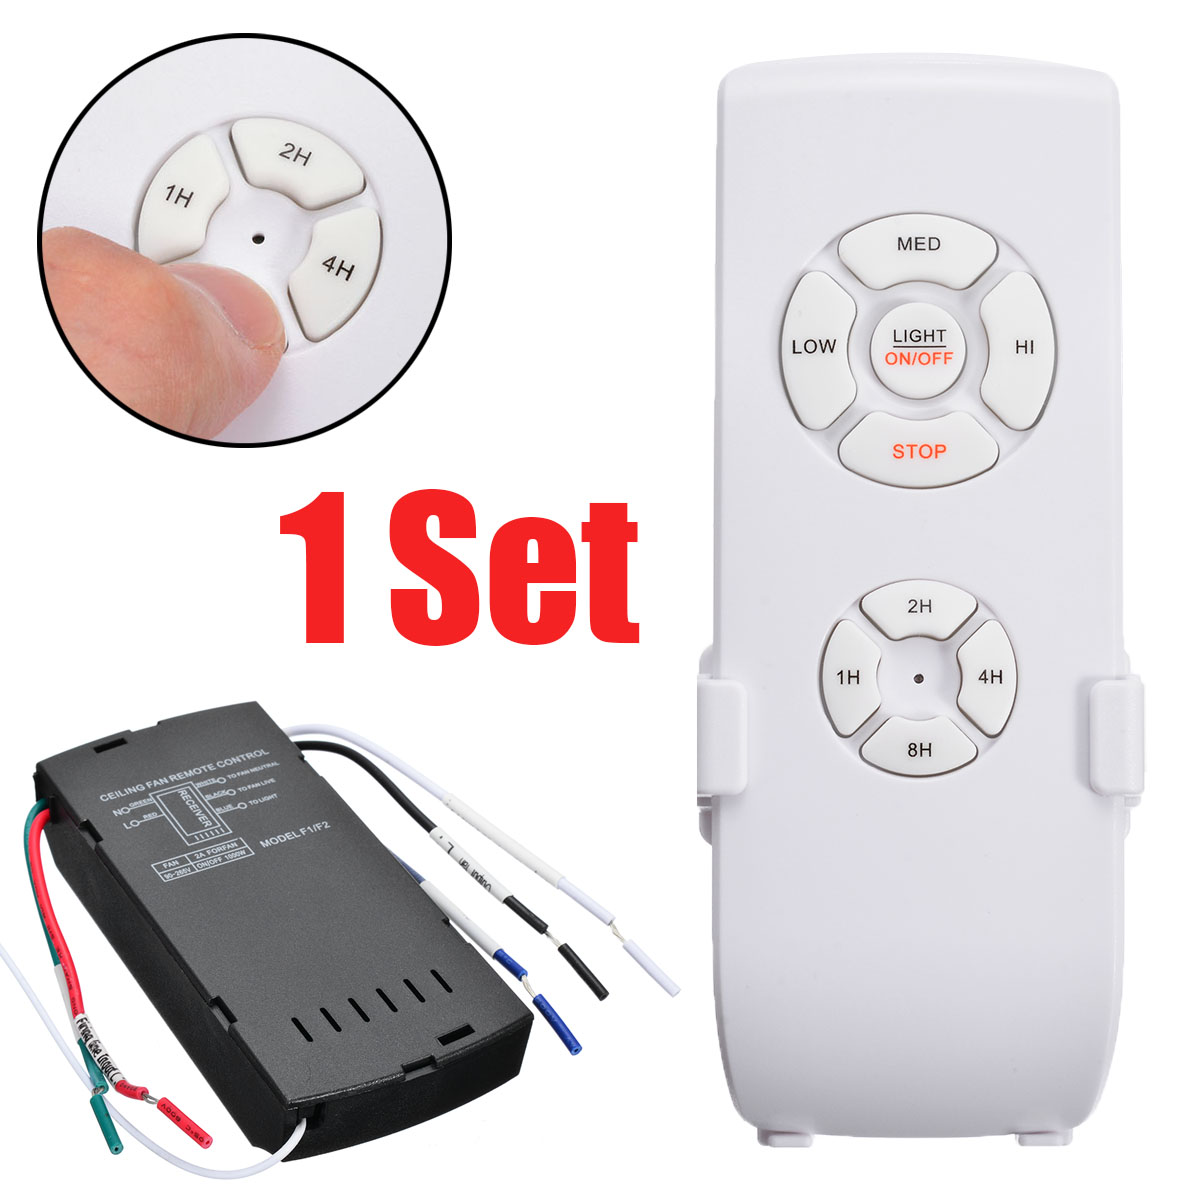 1Kit Universal Ceiling Fan Light Lamp Wireless Receiver Adjust Wind Speed And Timing With One Key Remote Controls